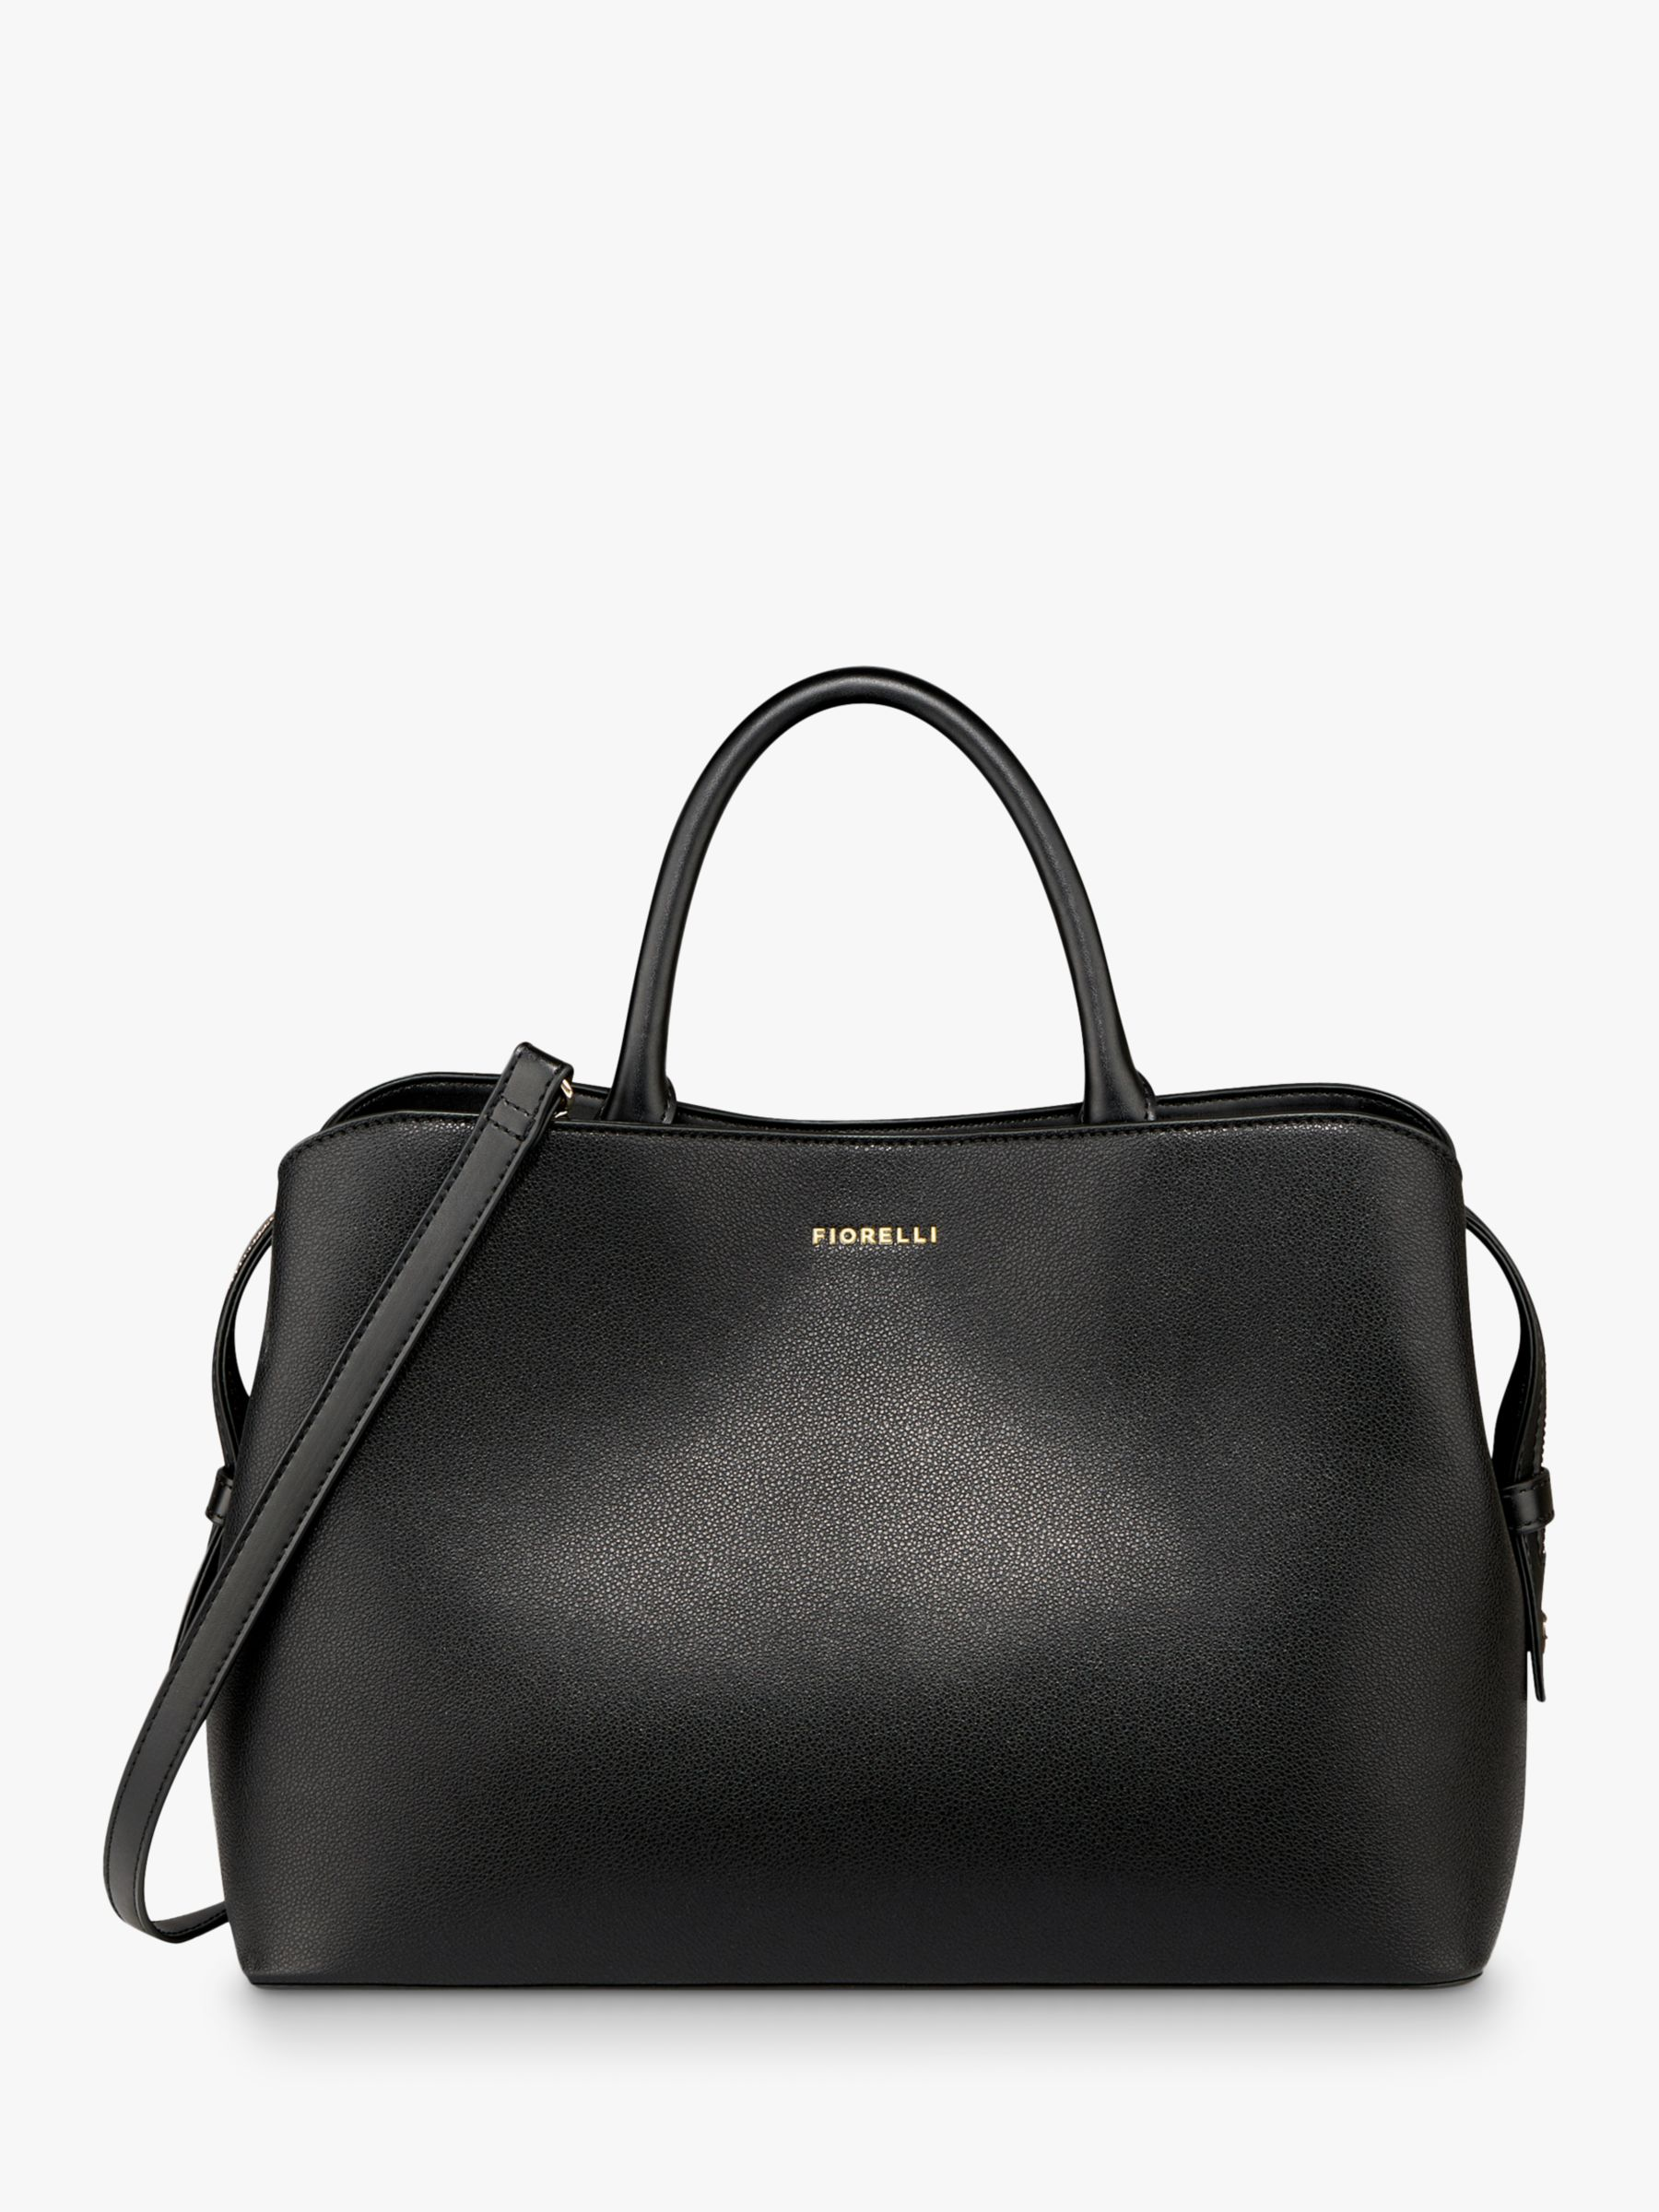 Fiorelli Fiorelli Bethnal Triple Compartment Grab Bag, Black